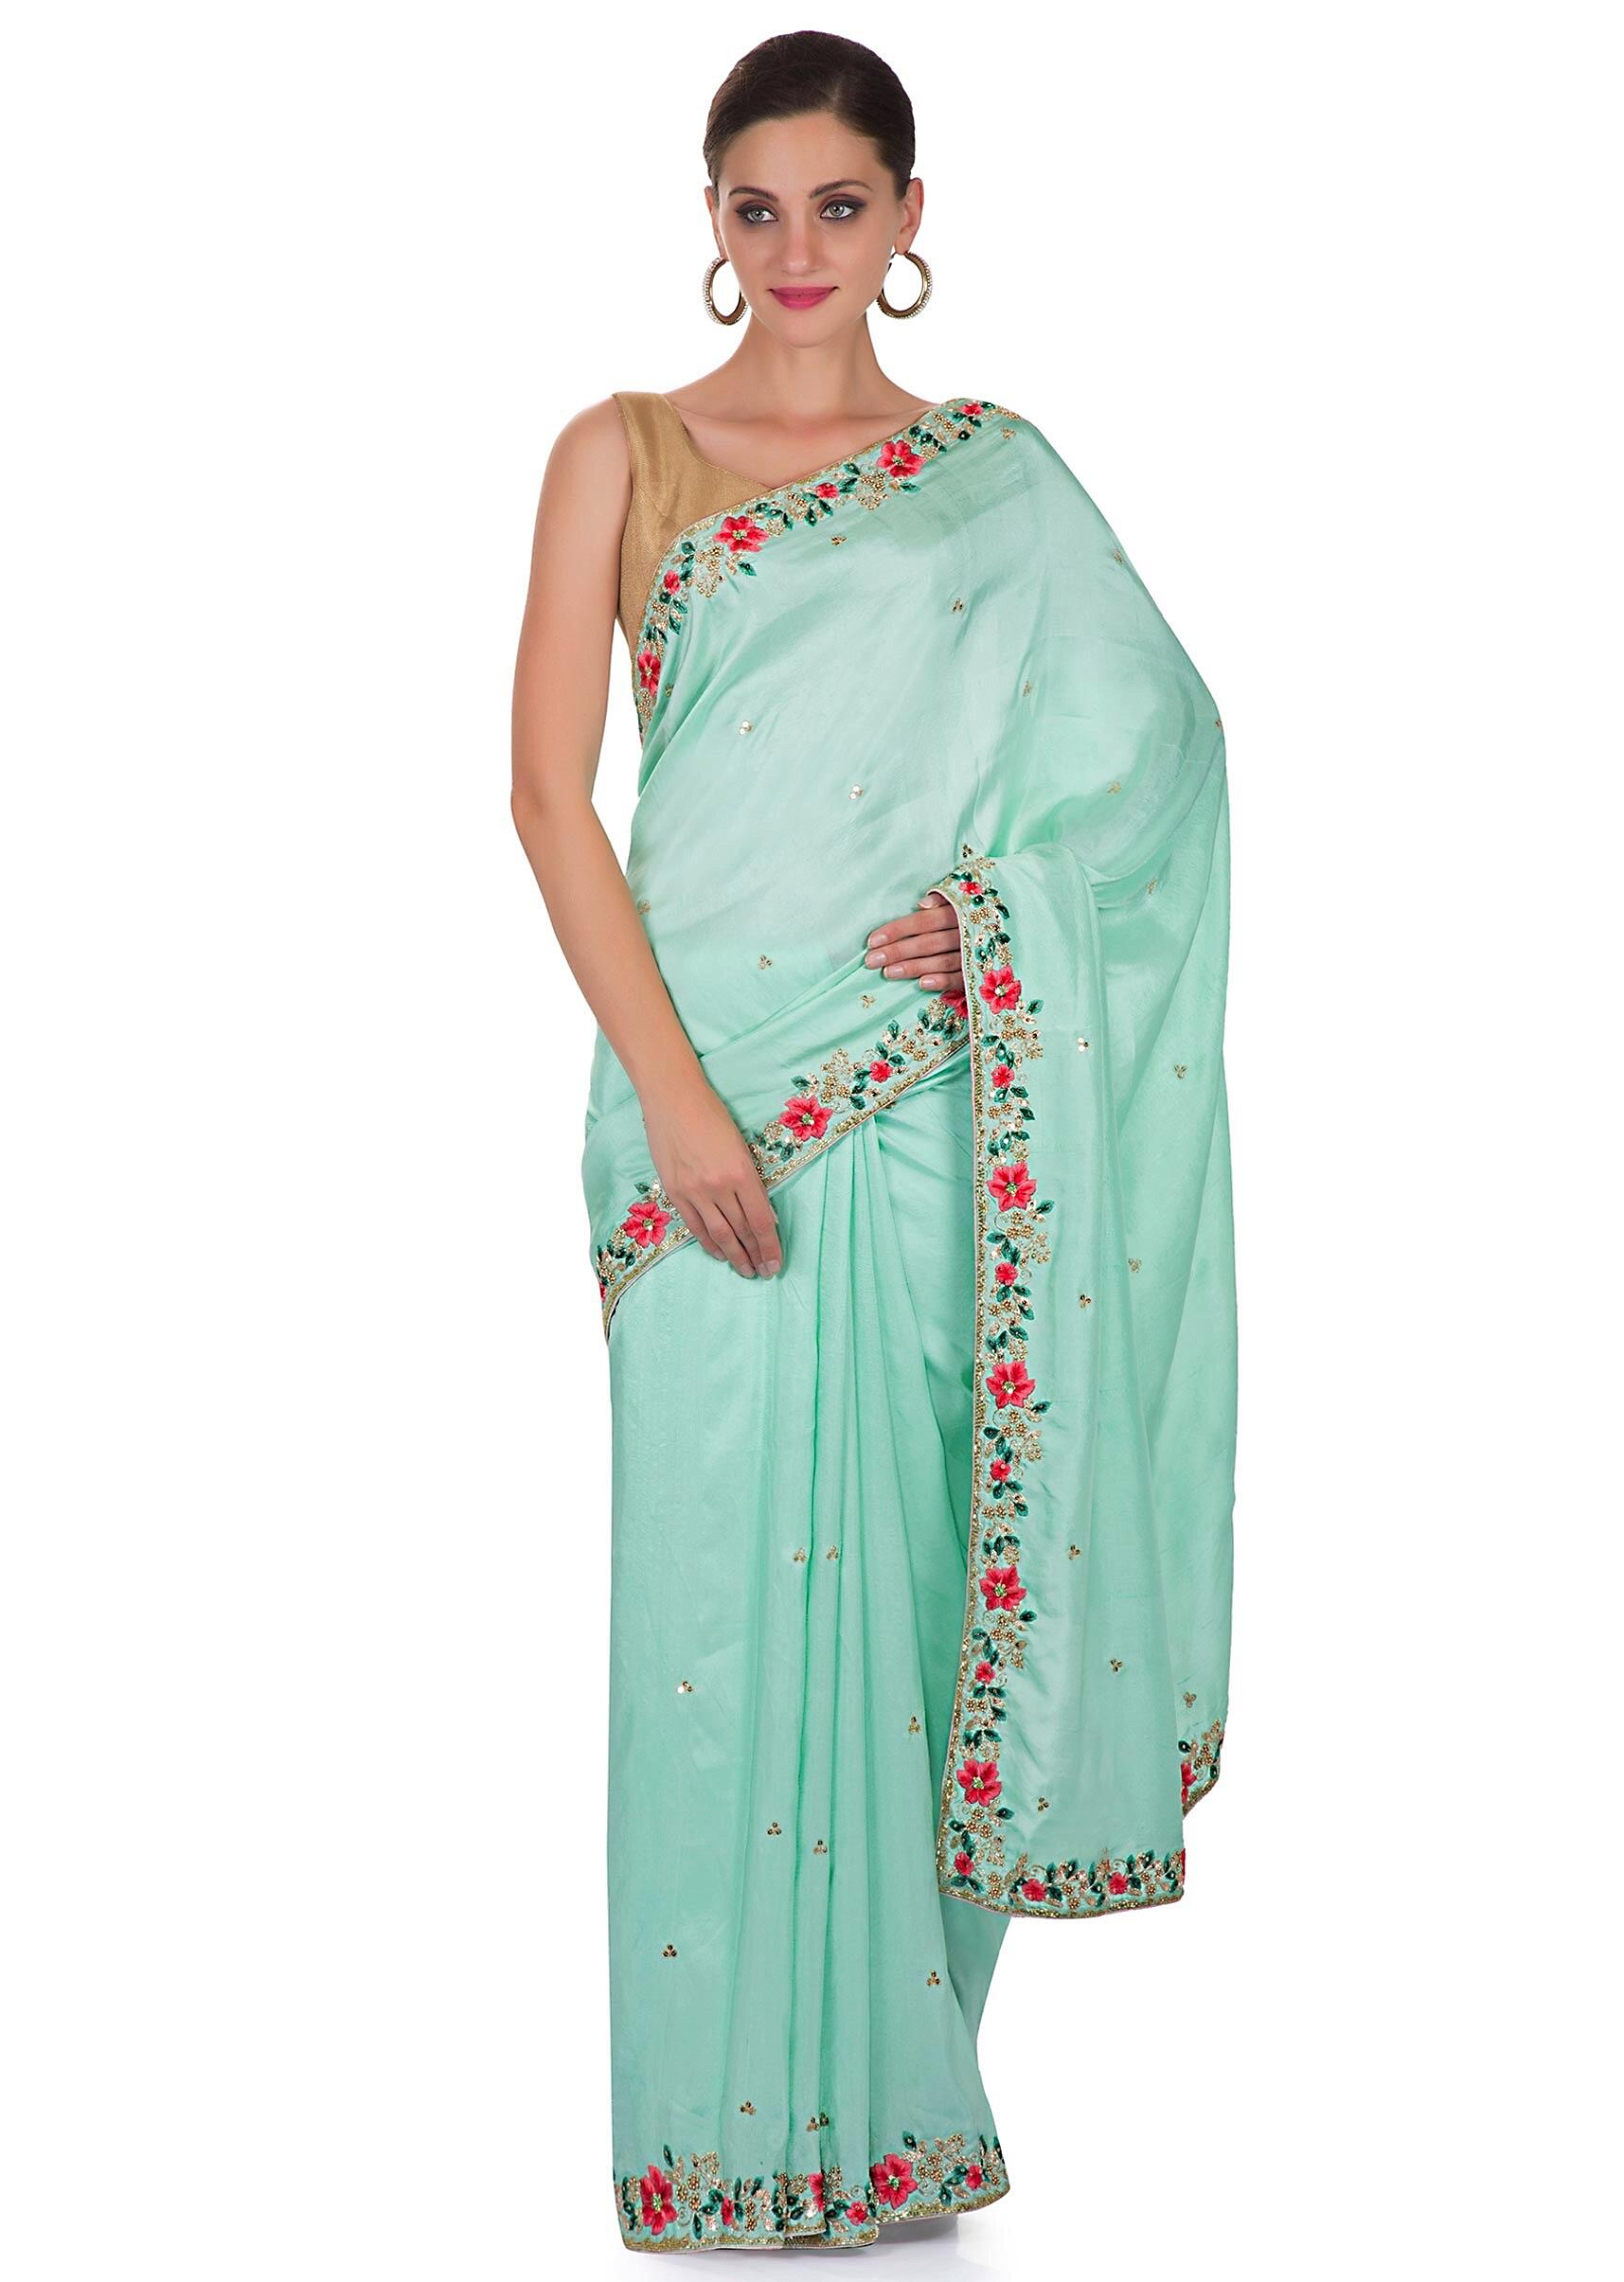 64dc33b8e99a9 Mint Green Satin Saree with Unstitched Pink Raw Silk Blouse Featuring  Resham and Zardosi only on KalkiMore Detail